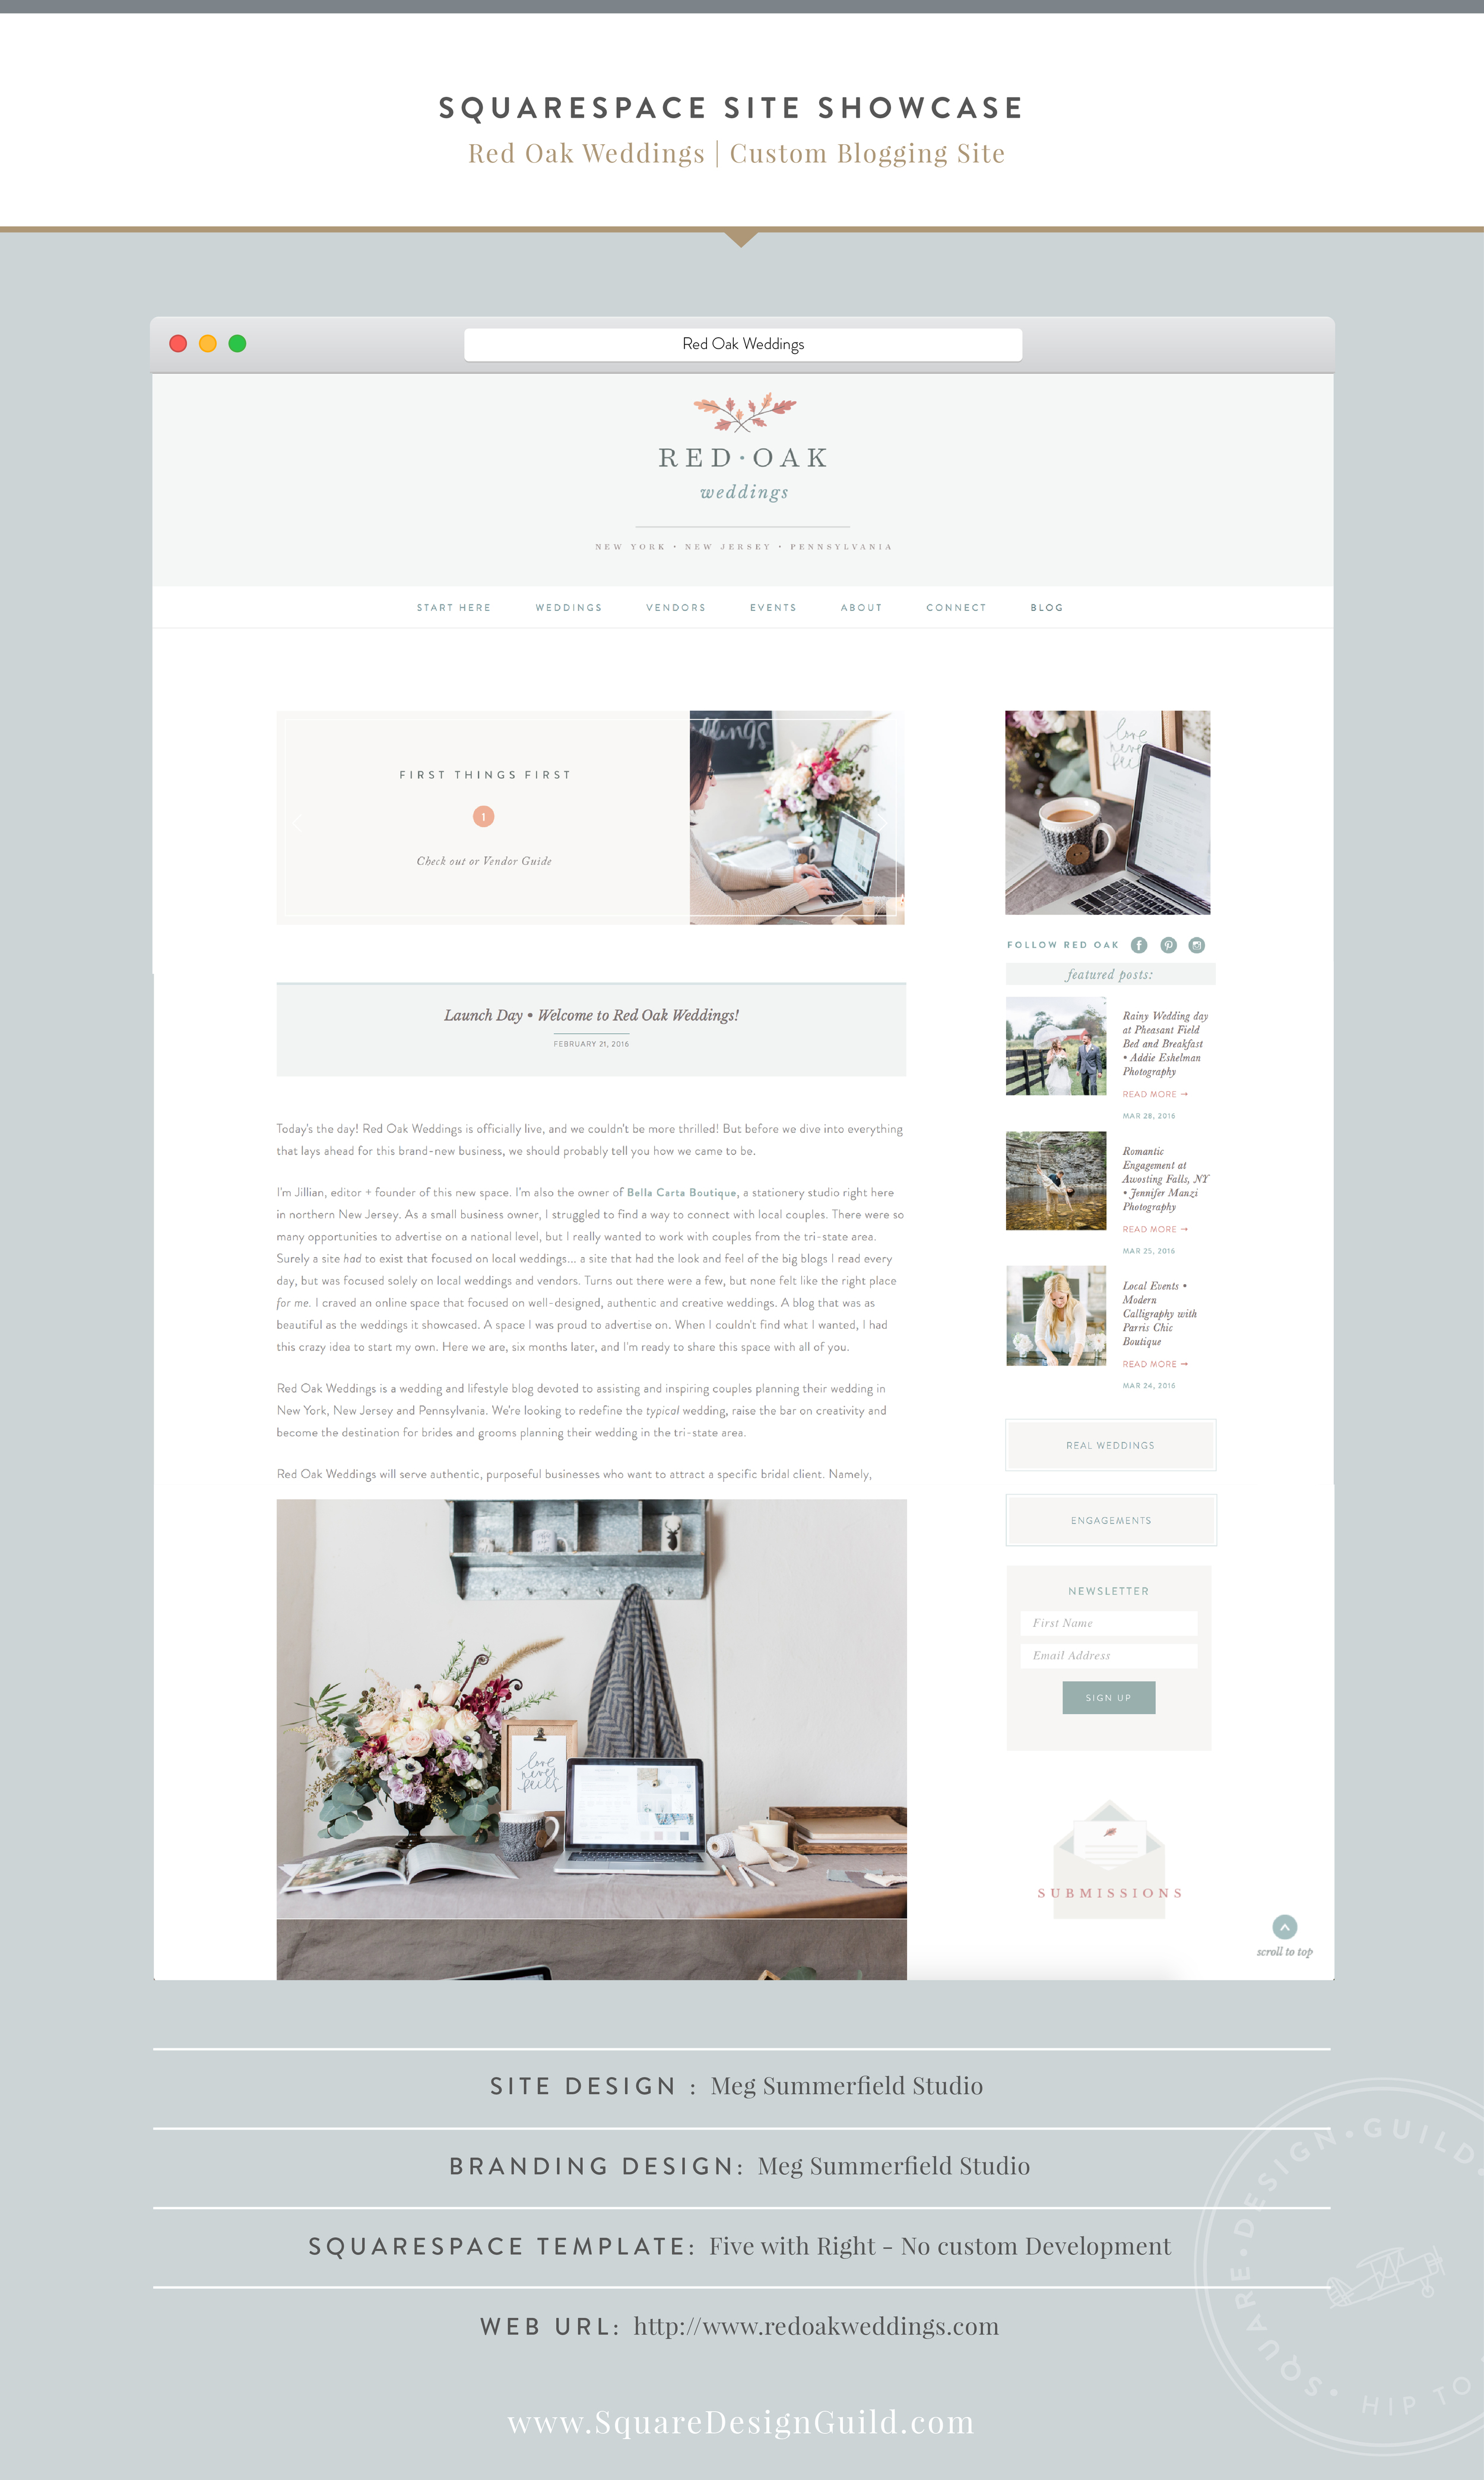 Squarespace Design Guild | Site Showcase by Designer | Red Oak Weddings